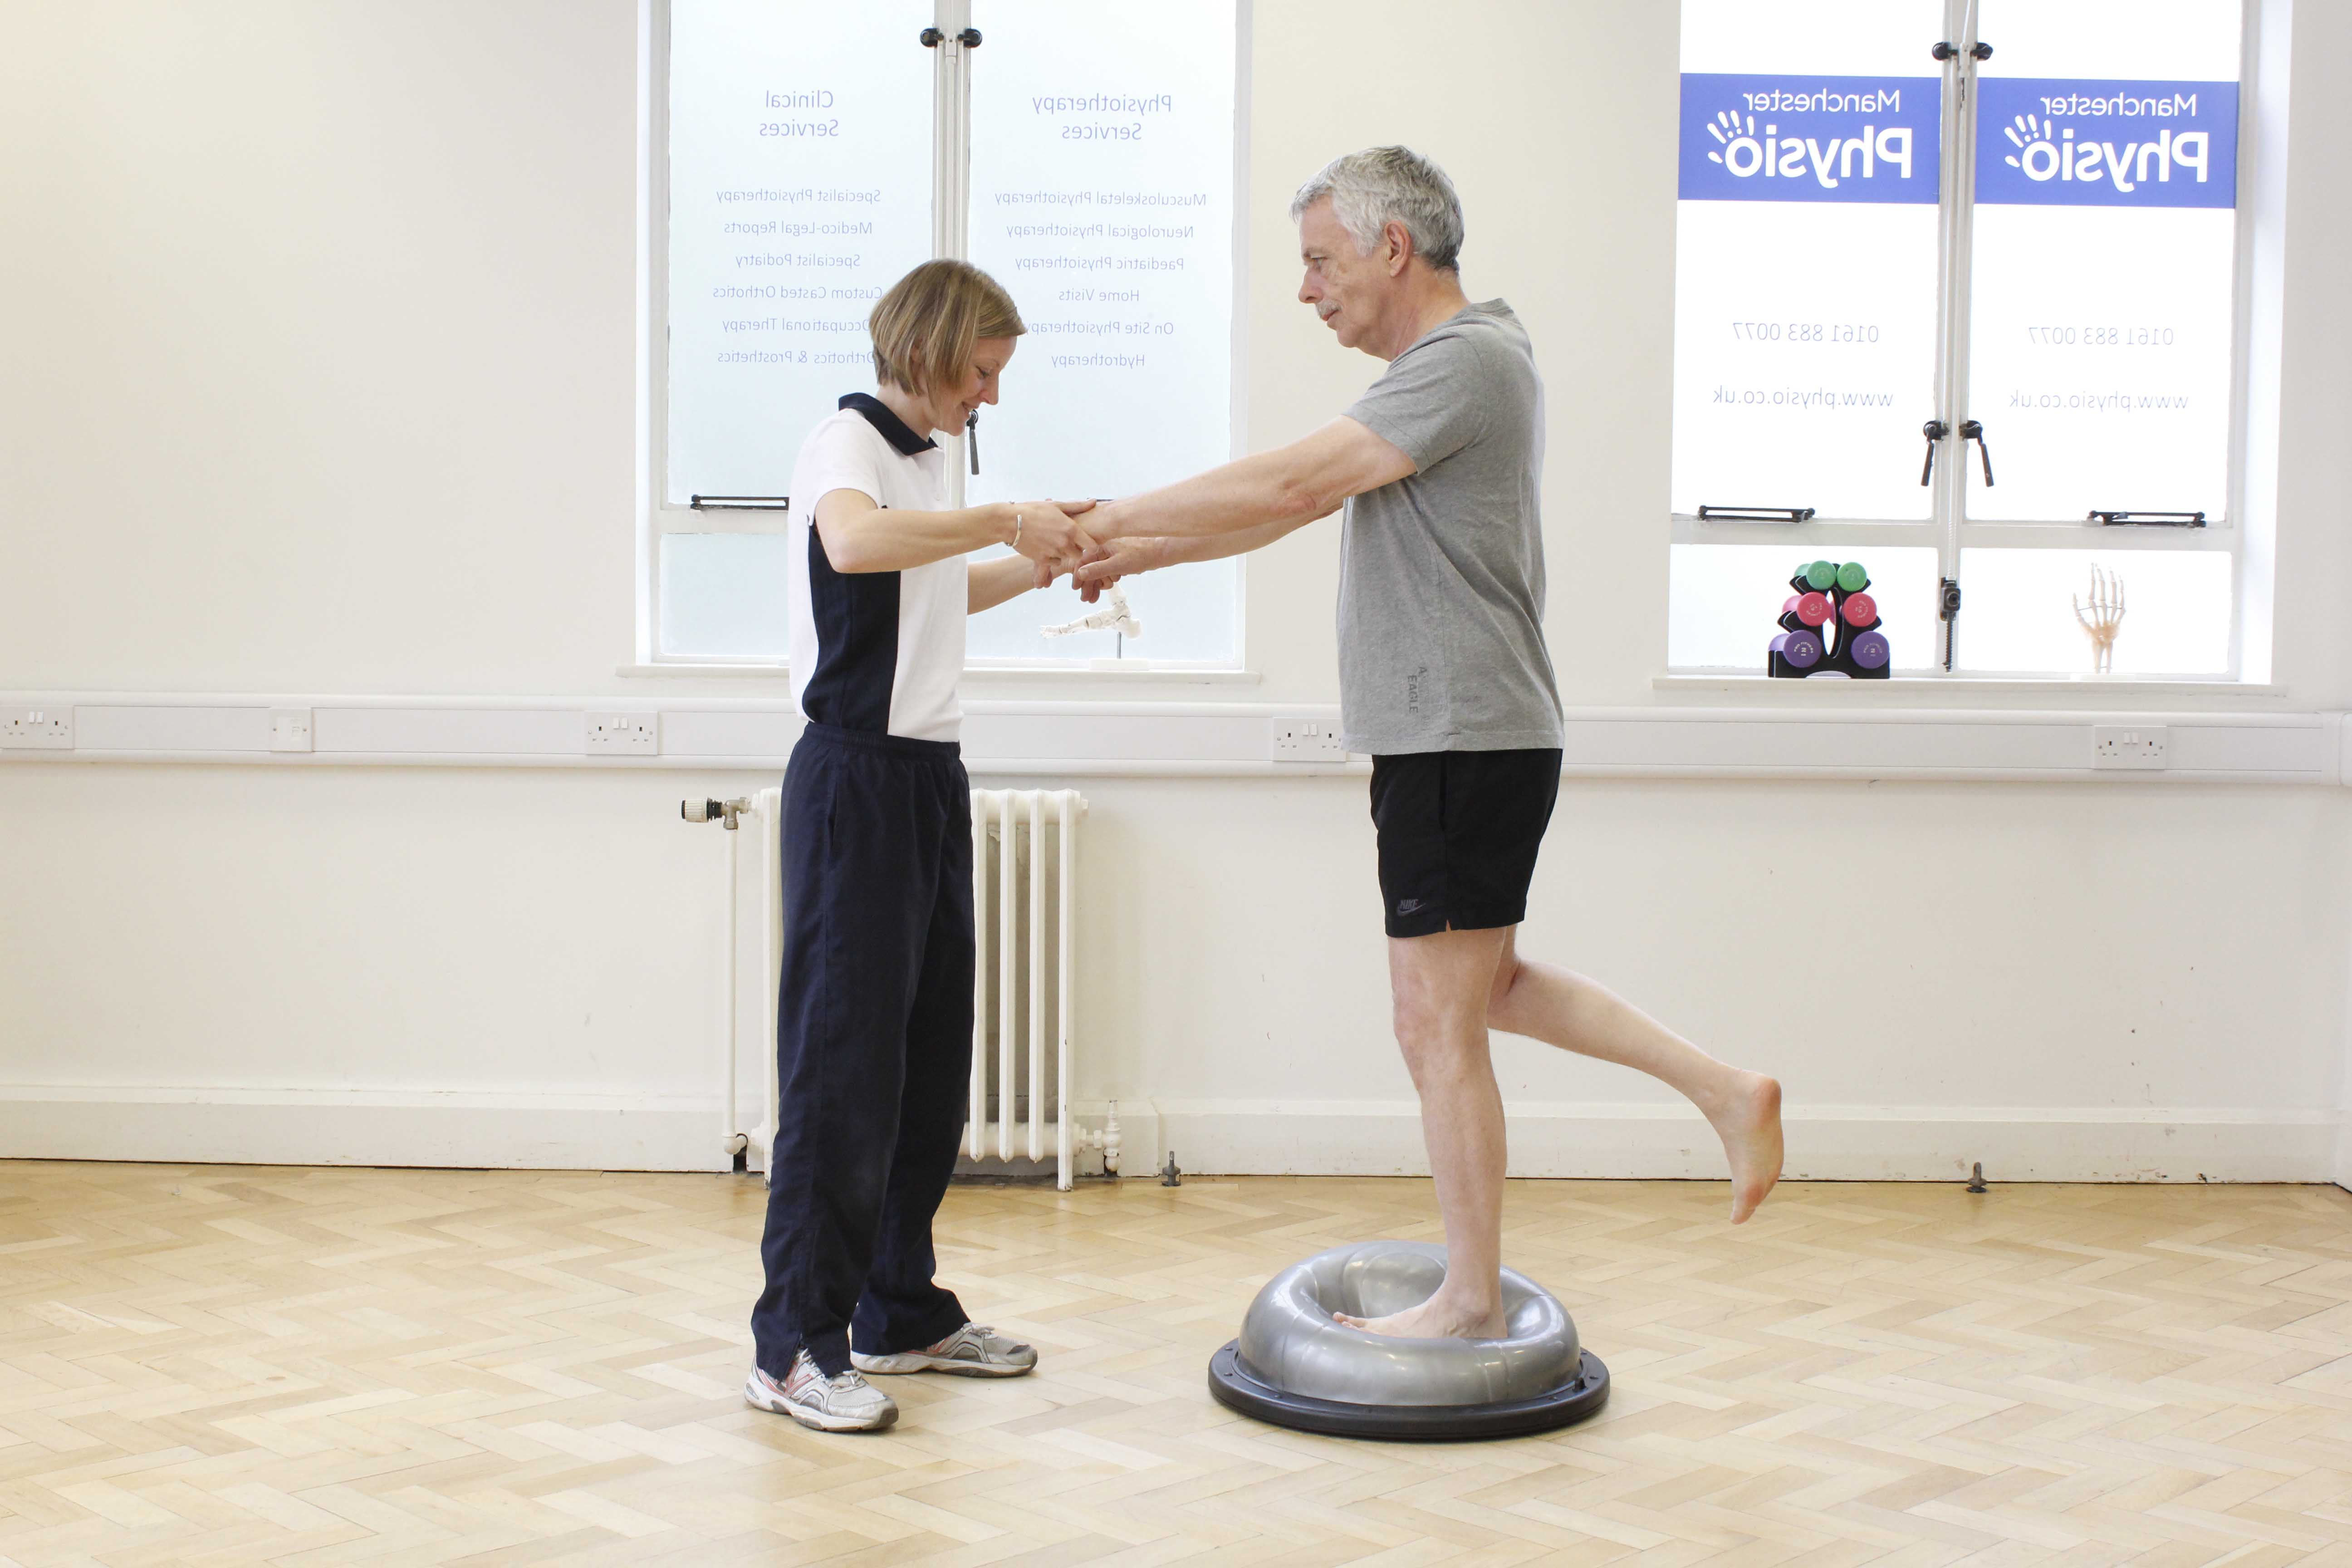 Hip, knee and ankle stability and proprioception exercises assisted by a neurological physiotherapist